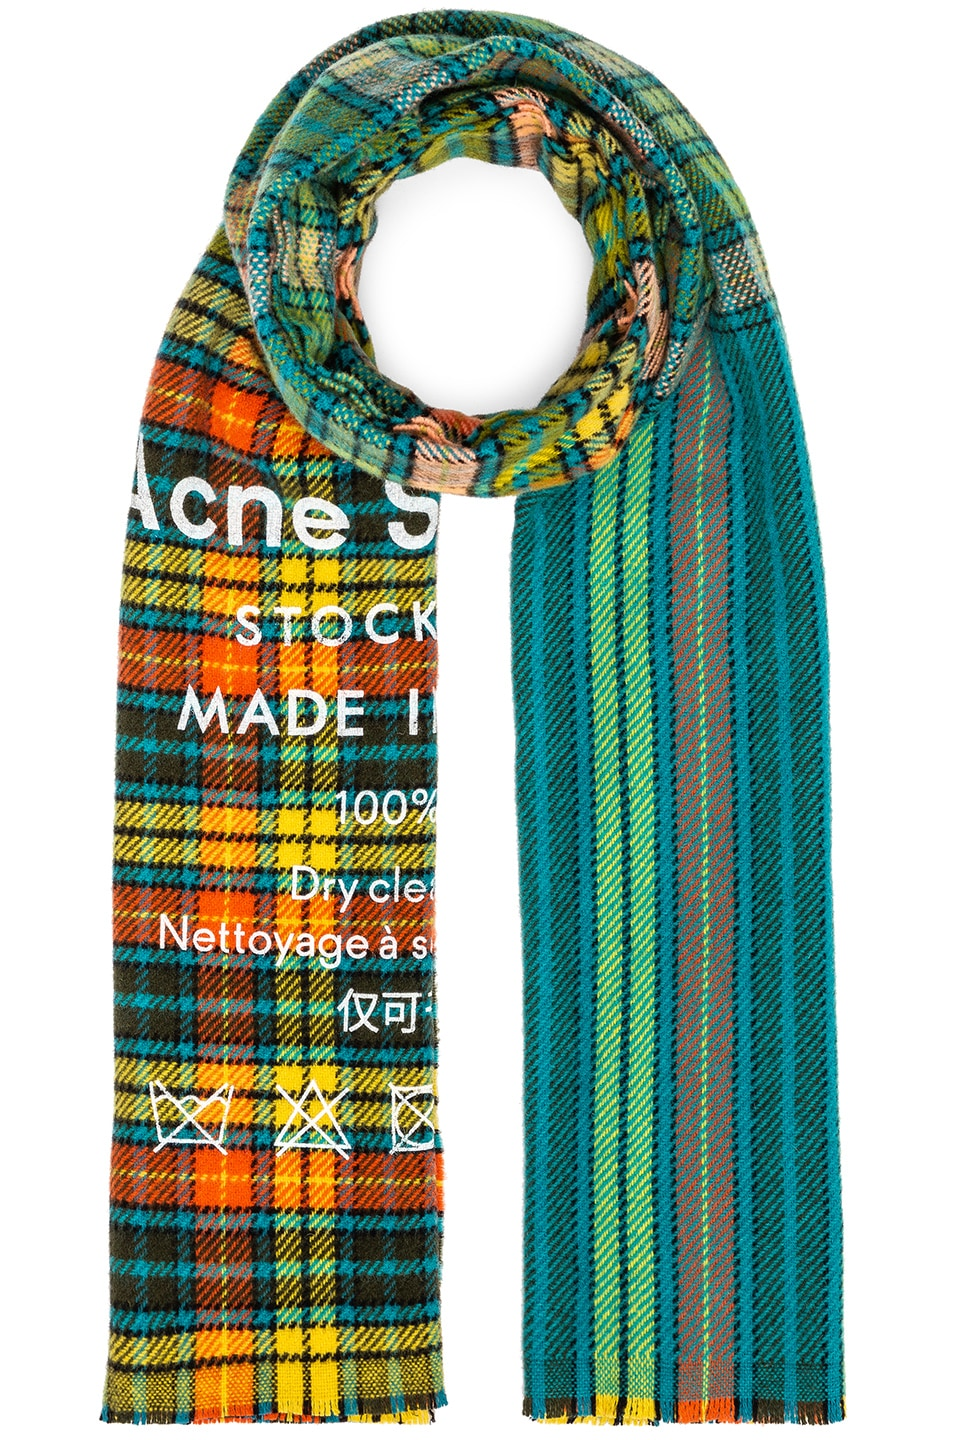 b7bd2e6163c3d Image 1 of Acne Studios Cassiar Check Scarf in Mid Blue   Yellow Check